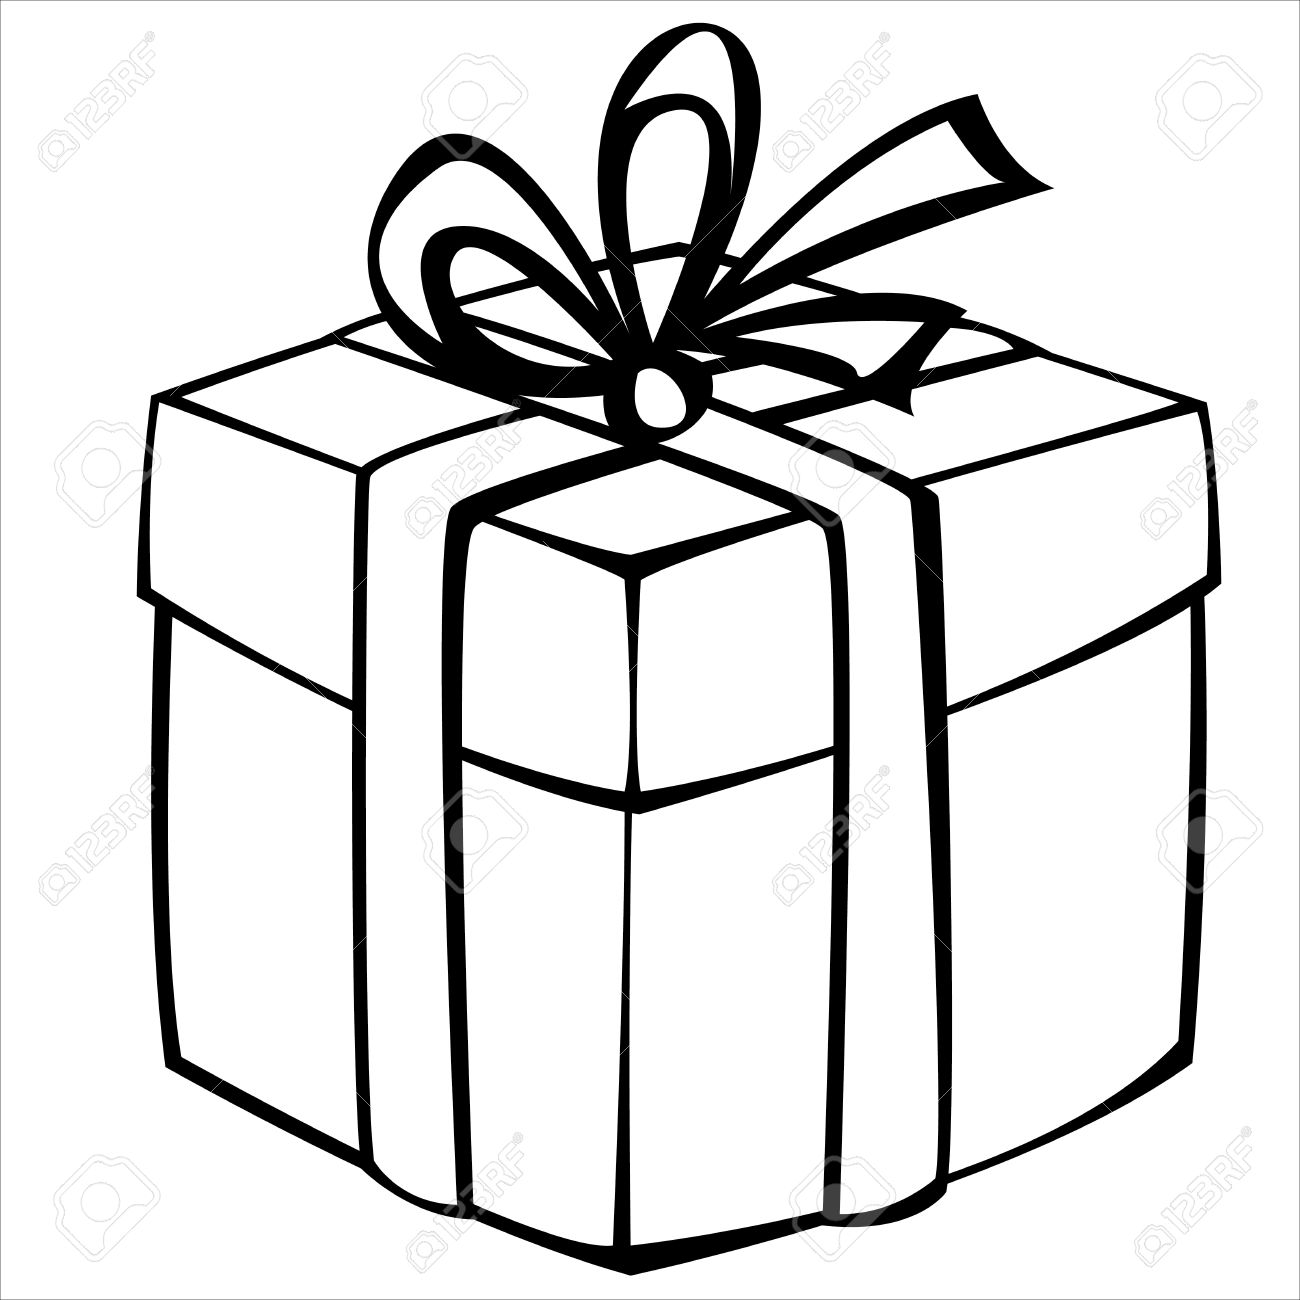 Gift Box Drawing at GetDrawings.com | Free for personal use Gift Box ... for Birthday Gift Clipart Black And White  17lplyp